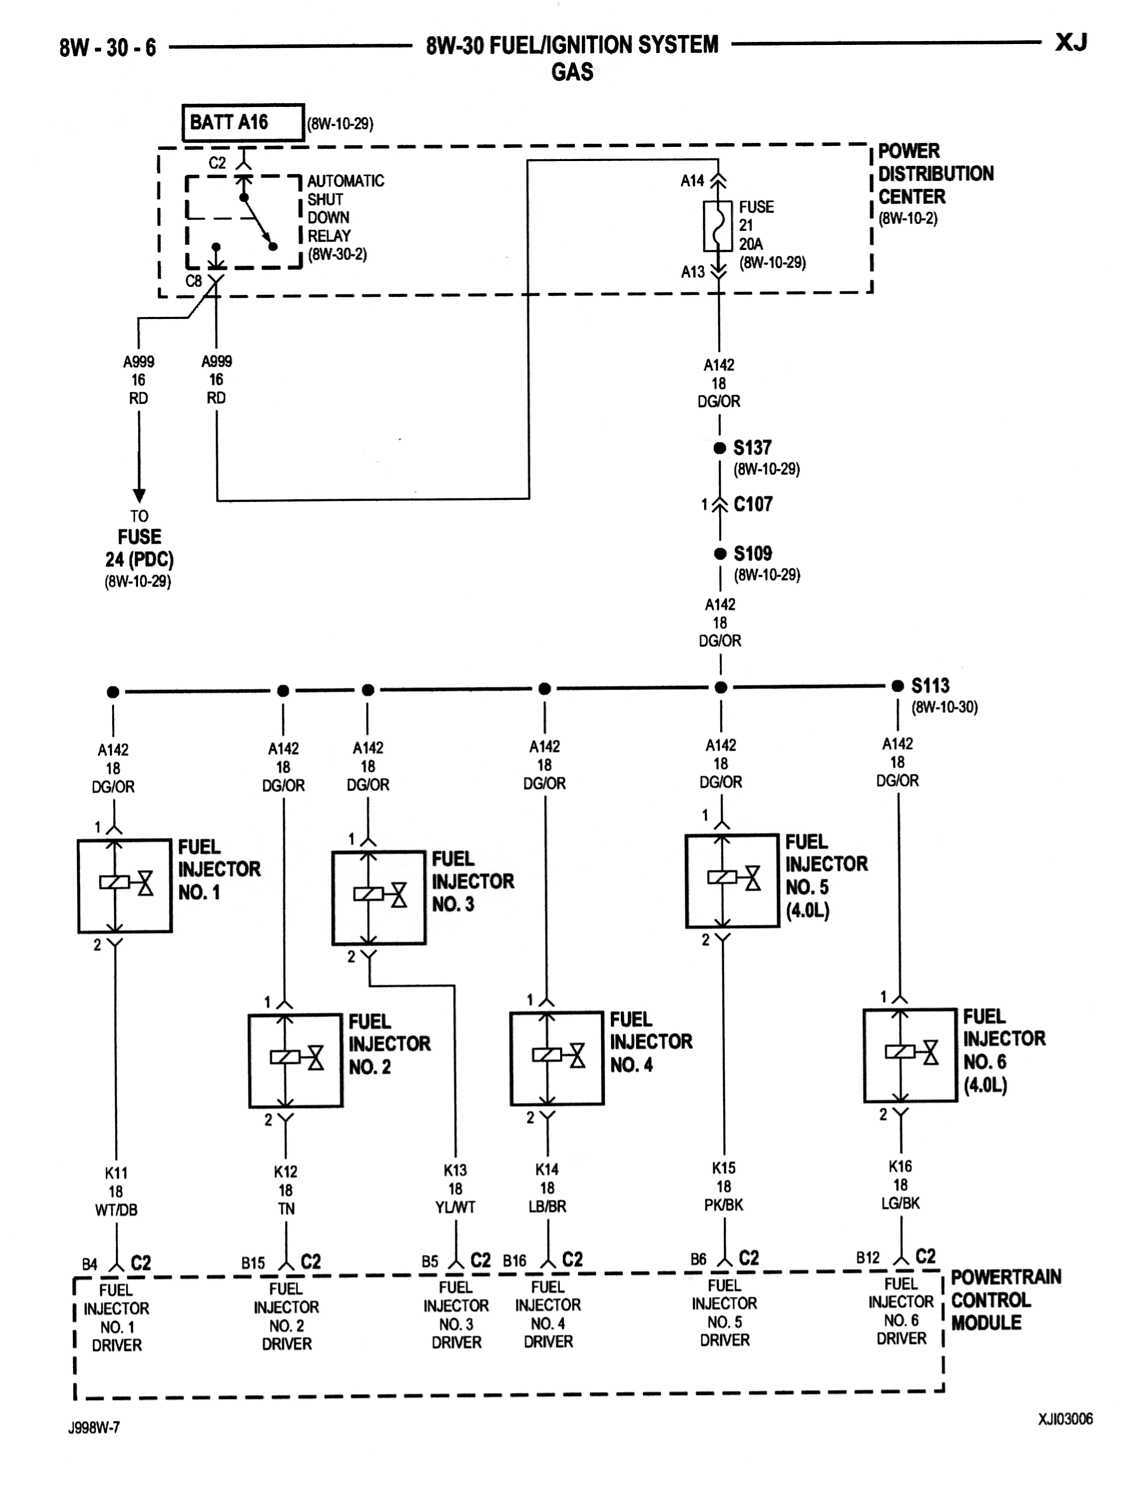 hight resolution of wiring diagram further jeep grand cherokee pcm moreover jeep liberty addition 2004 jeep grand cherokee wiring harnesses further 2006 jeep